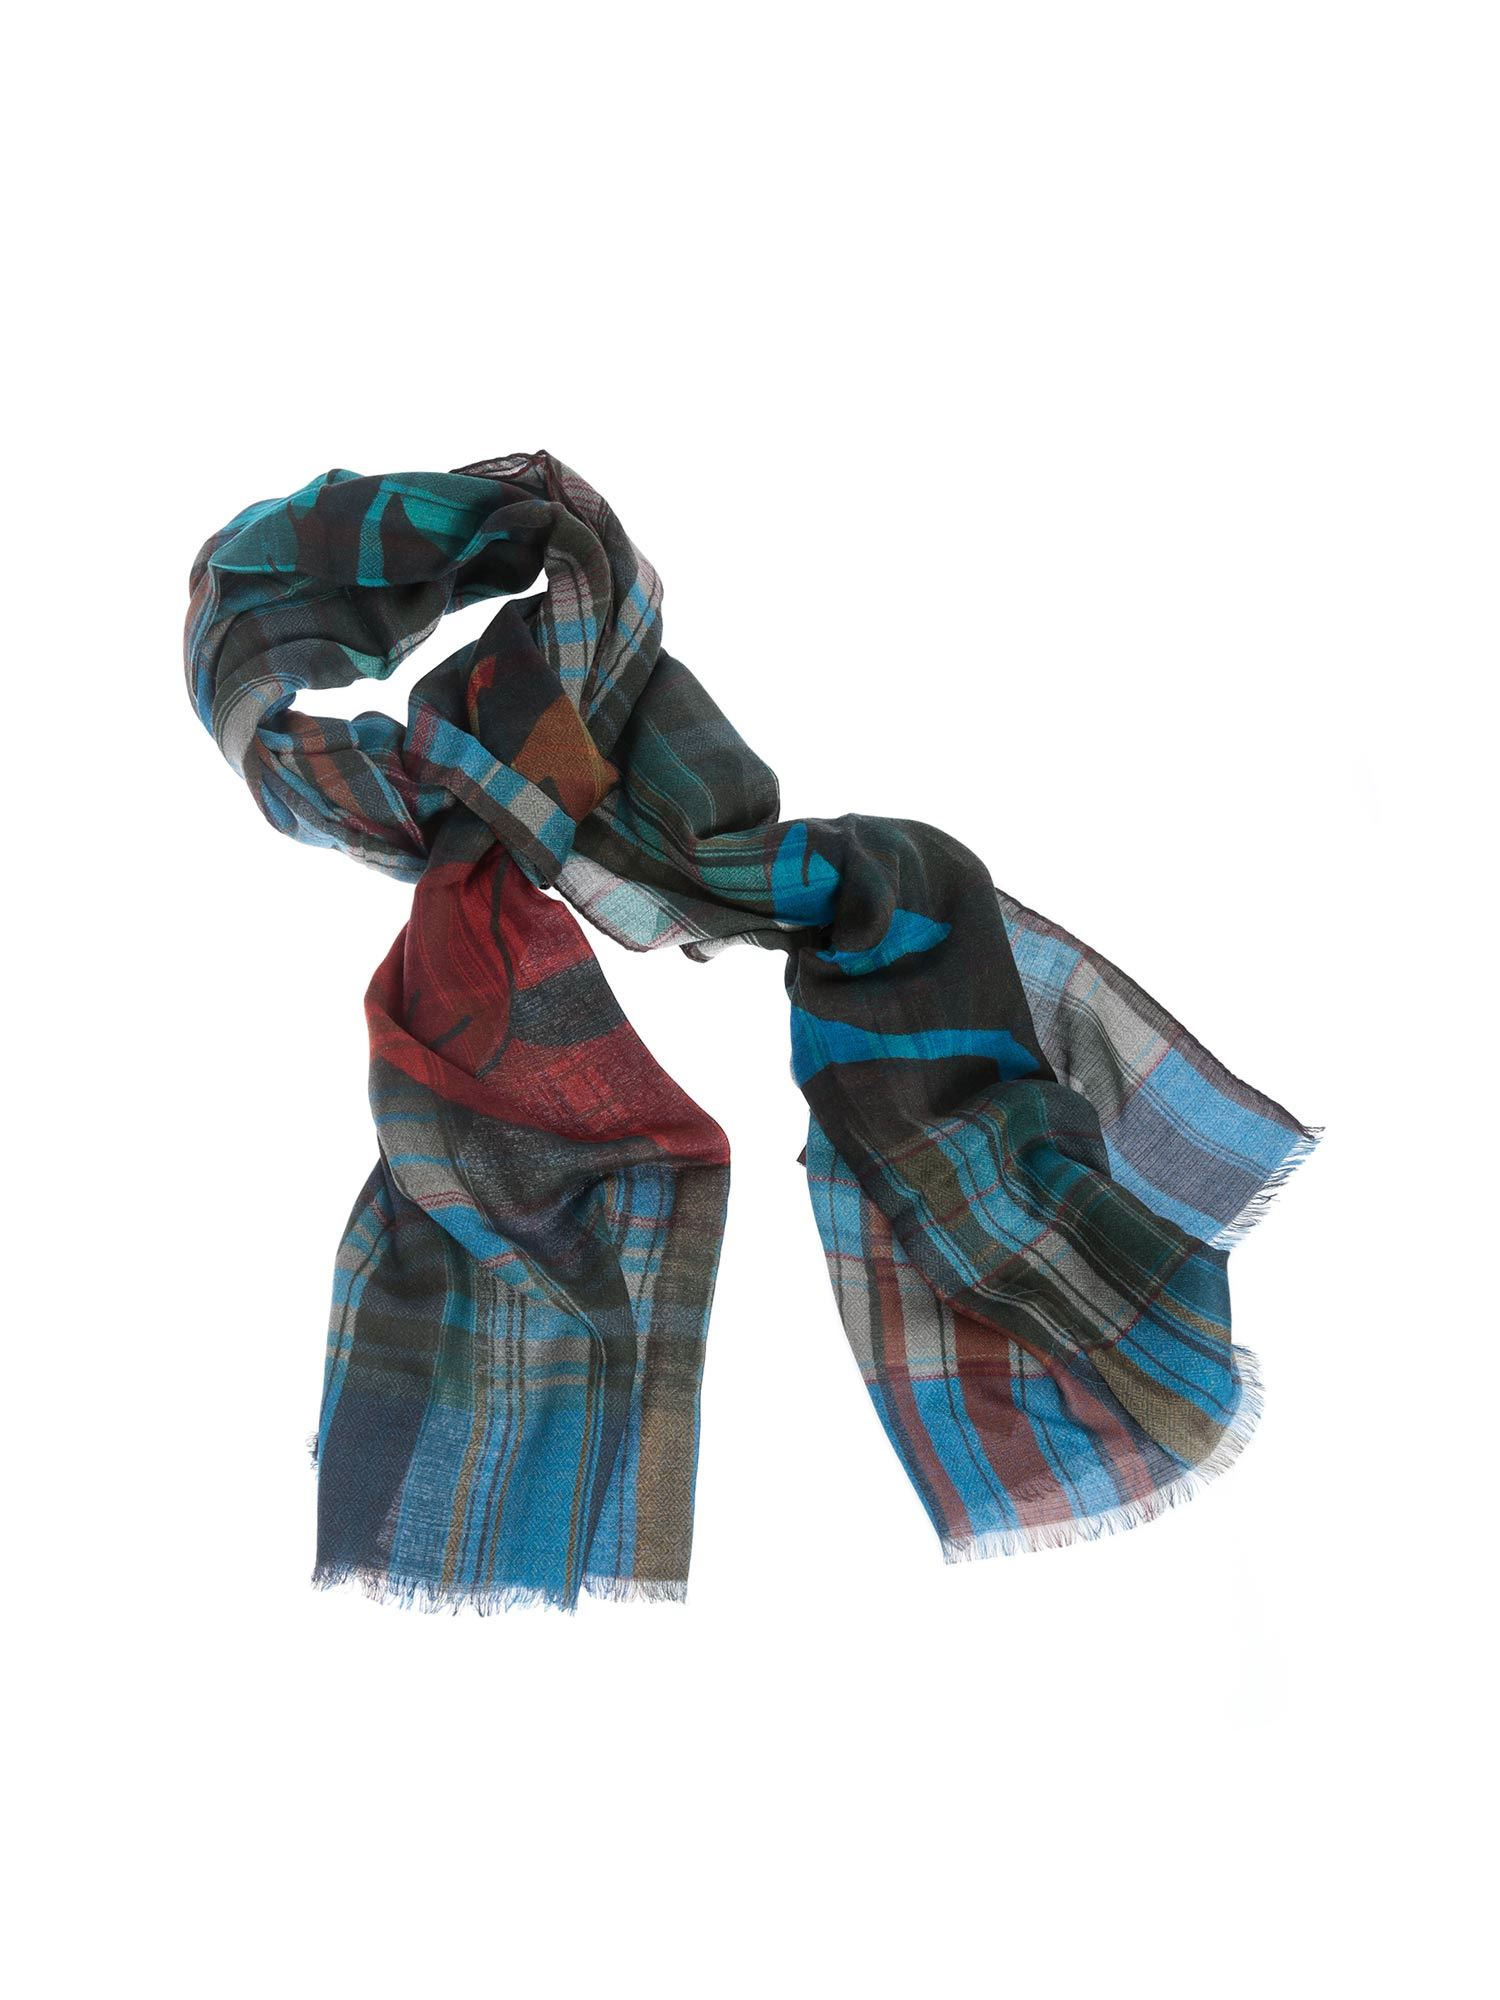 Etro SHAAL CHECKED SCARF IN BLUE